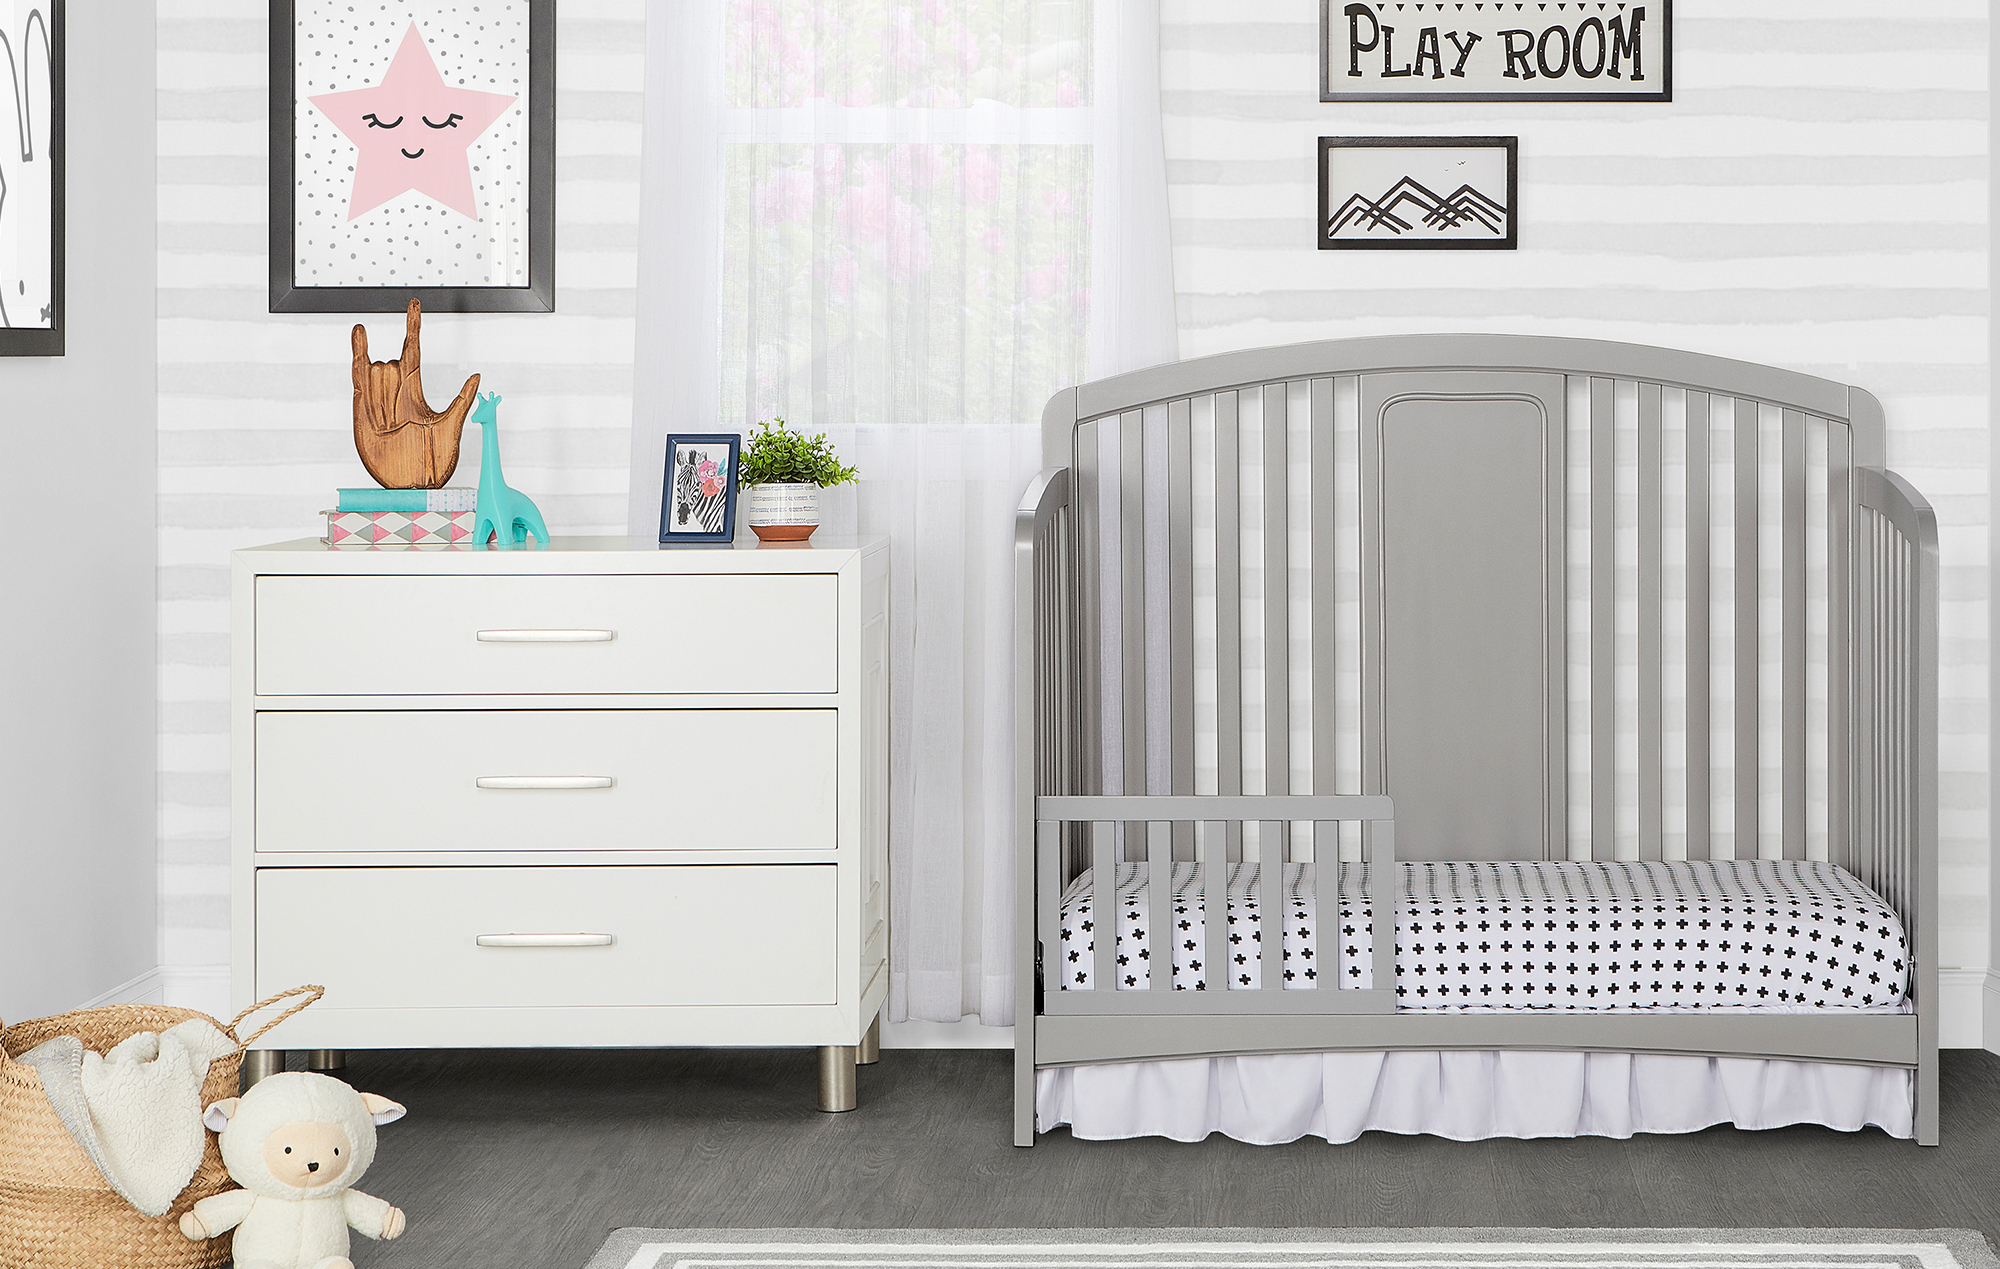 775-SGP Arc Toddler Bed Room Shot